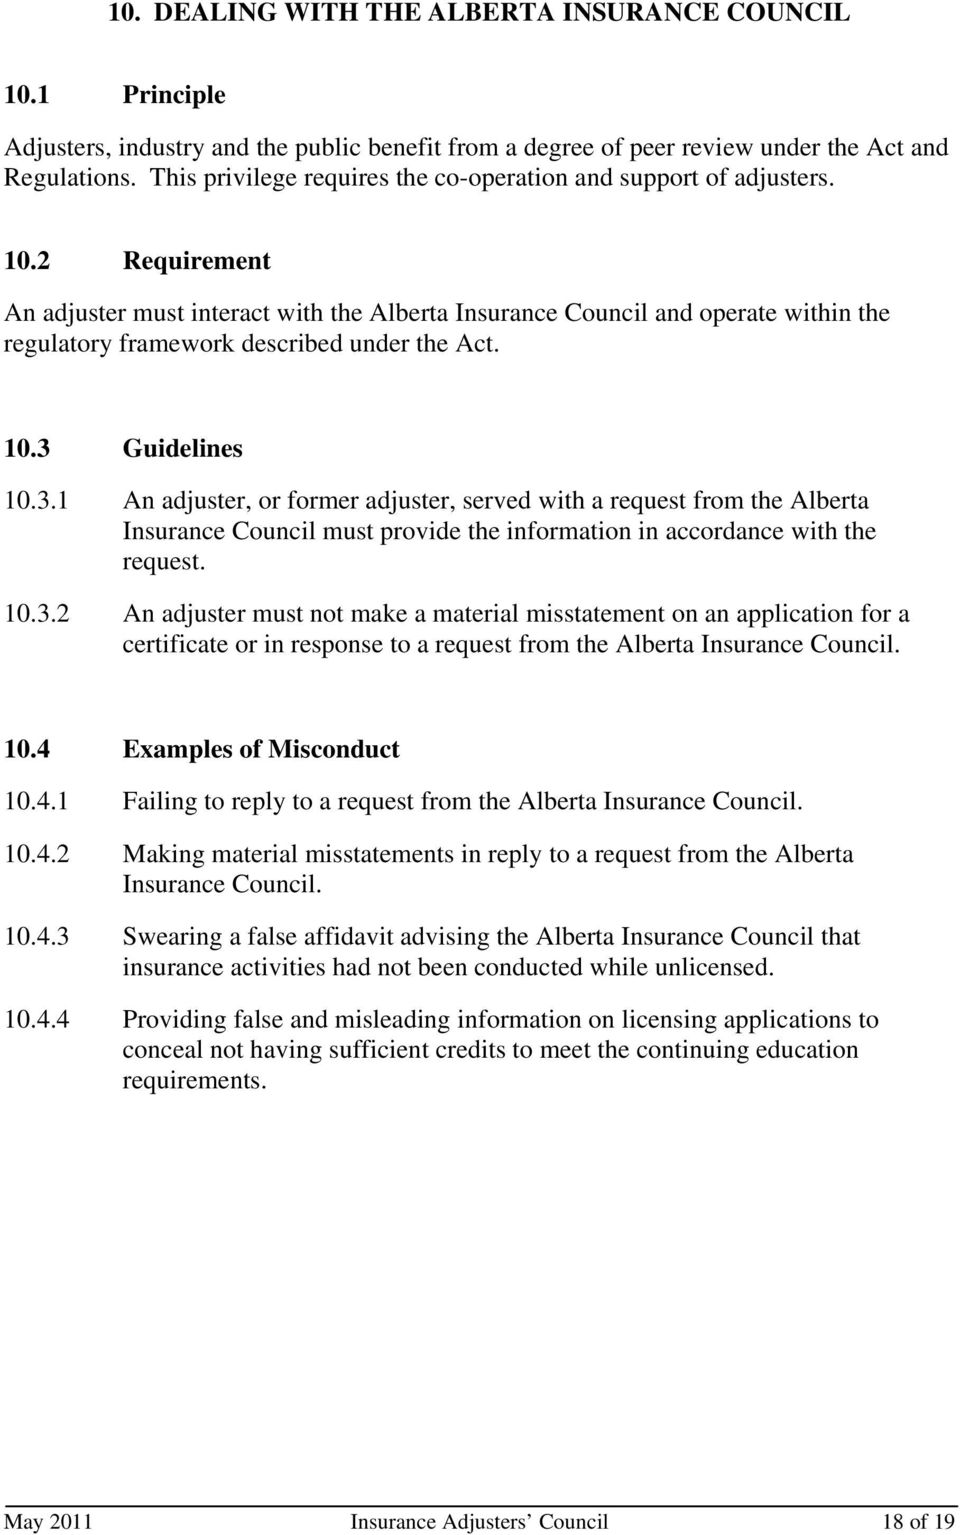 2 Requirement An adjuster must interact with the Alberta Insurance Council and operate within the regulatory framework described under the Act. 10.3